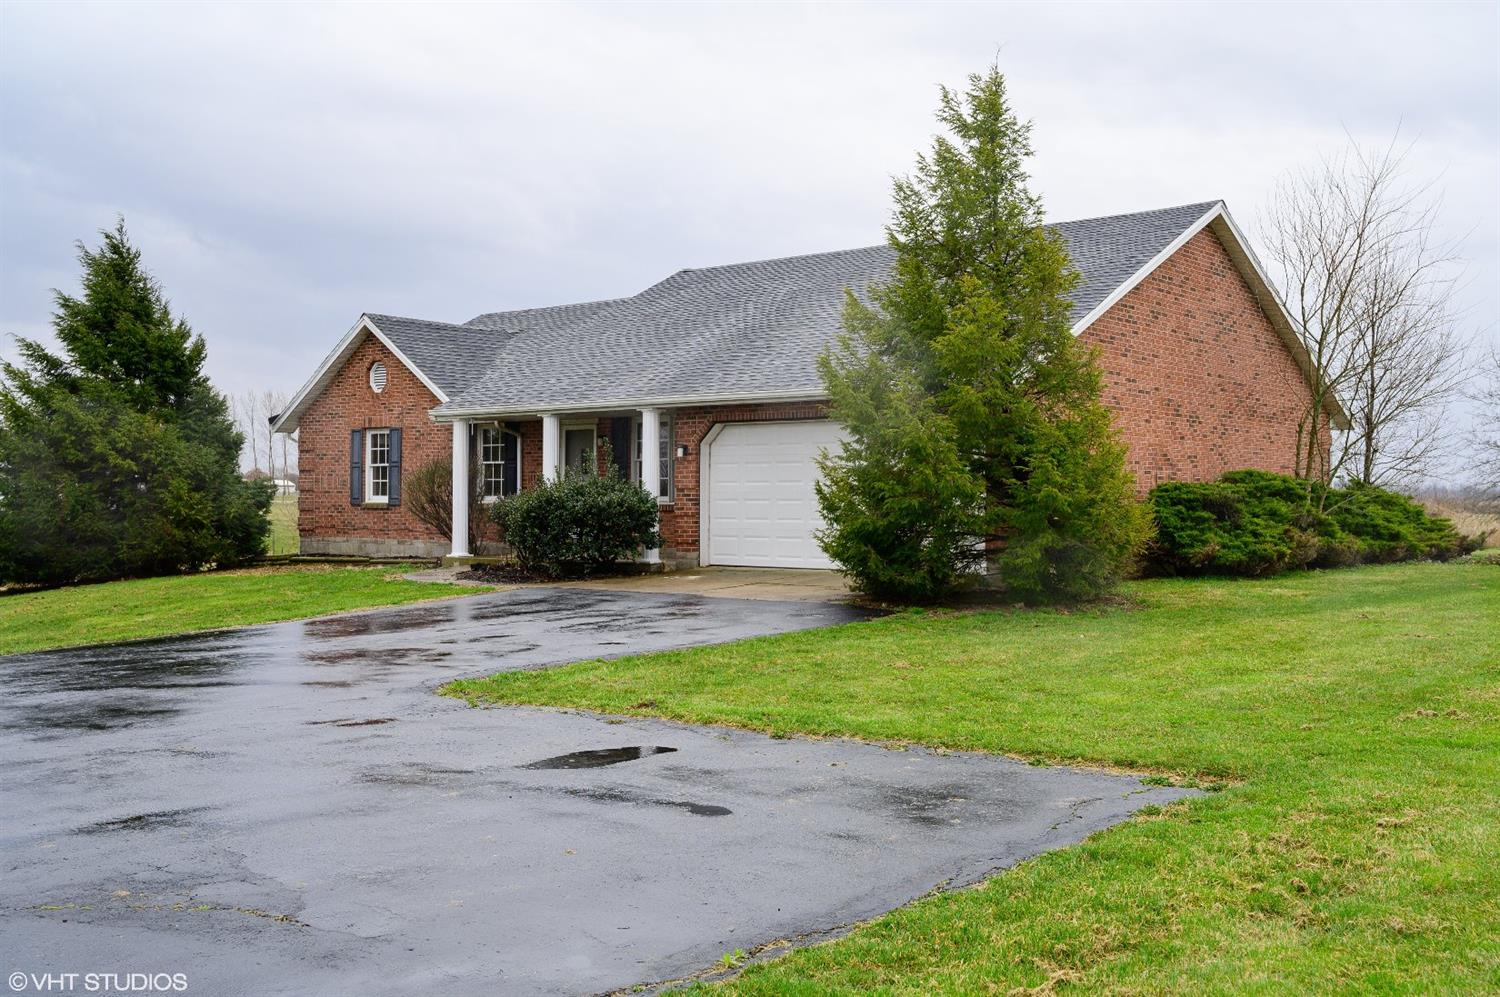 3770 Antioch Rd Green Twp. - Clinton Co., OH